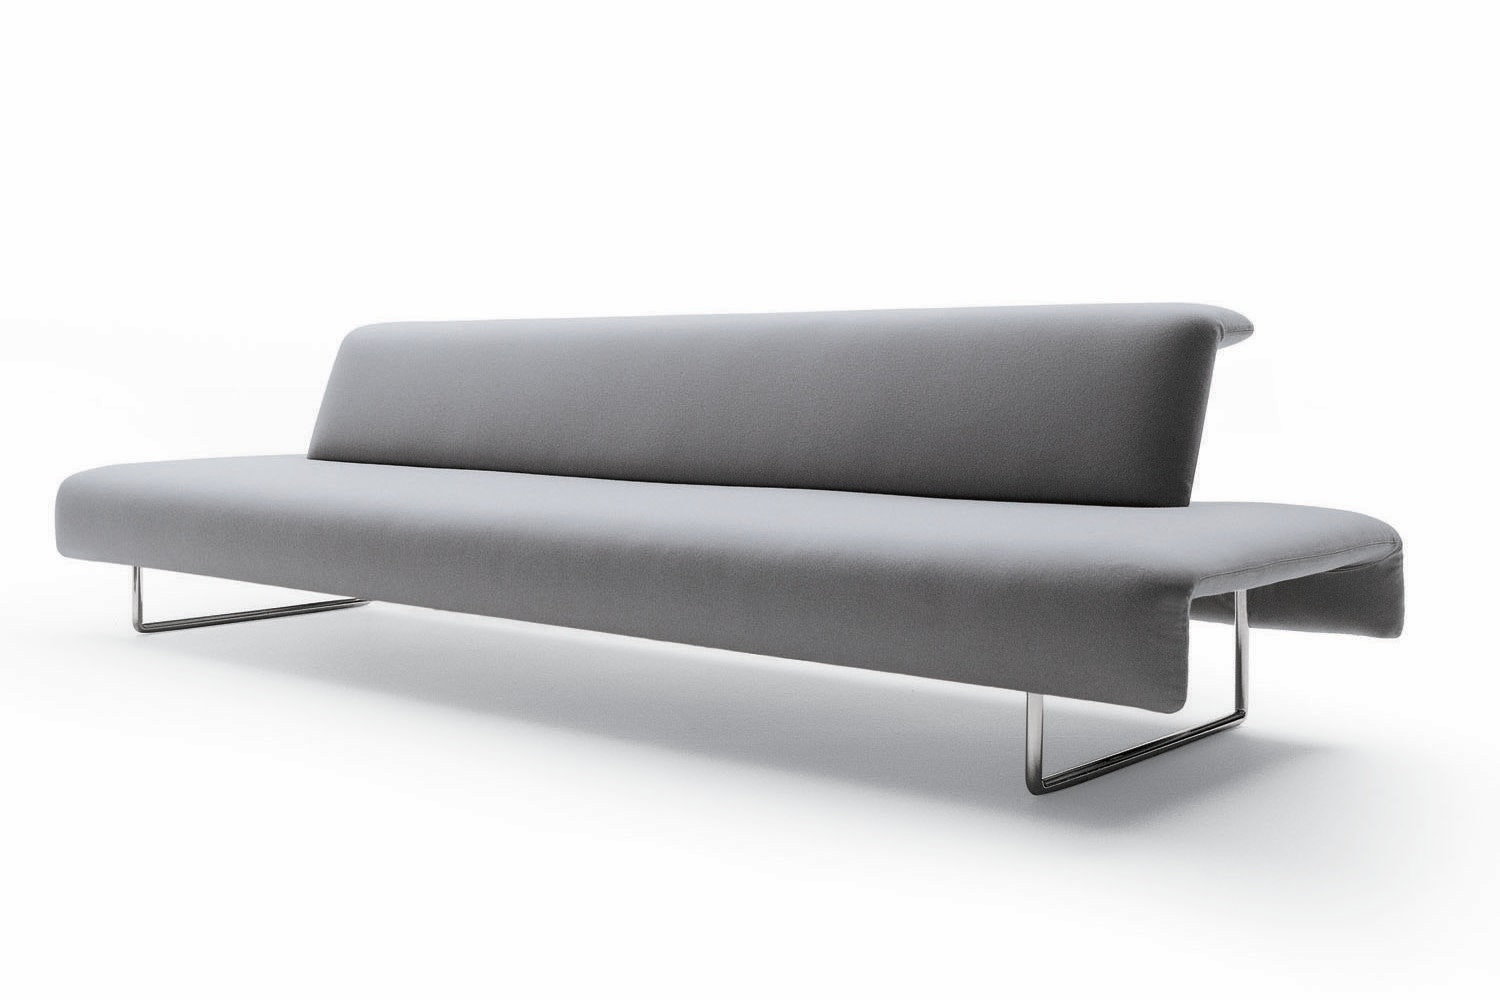 Cloud Bench by Naoto Fukasawa for B&B Italia Project